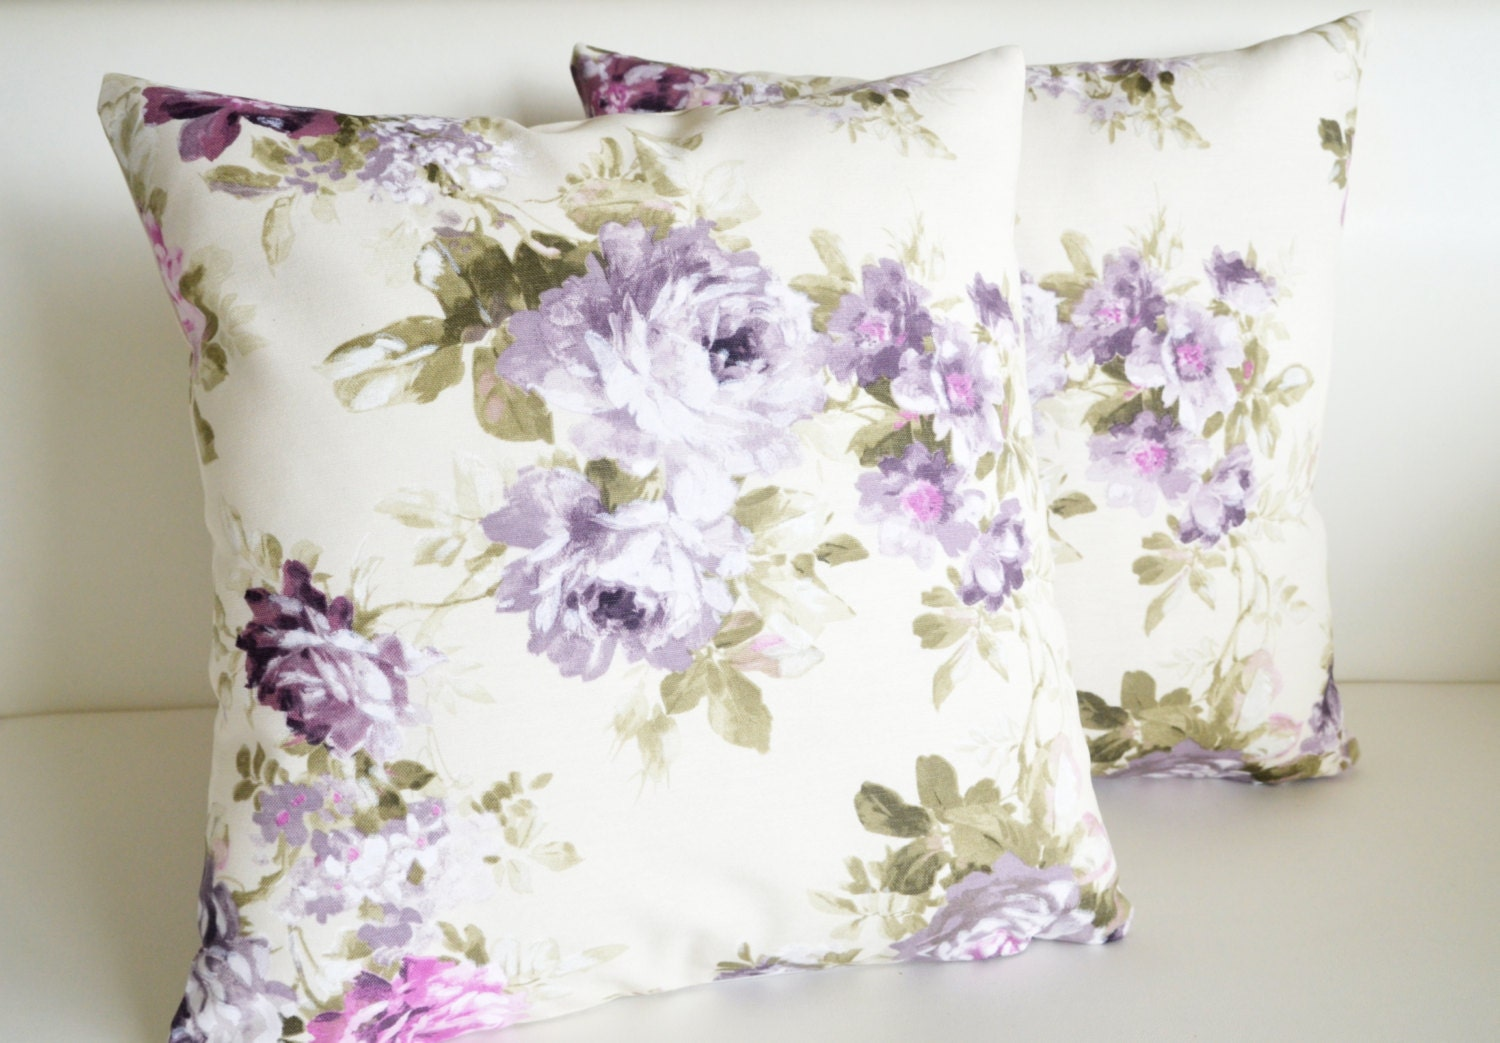 floral lace pillows white purple green decorative by sestras